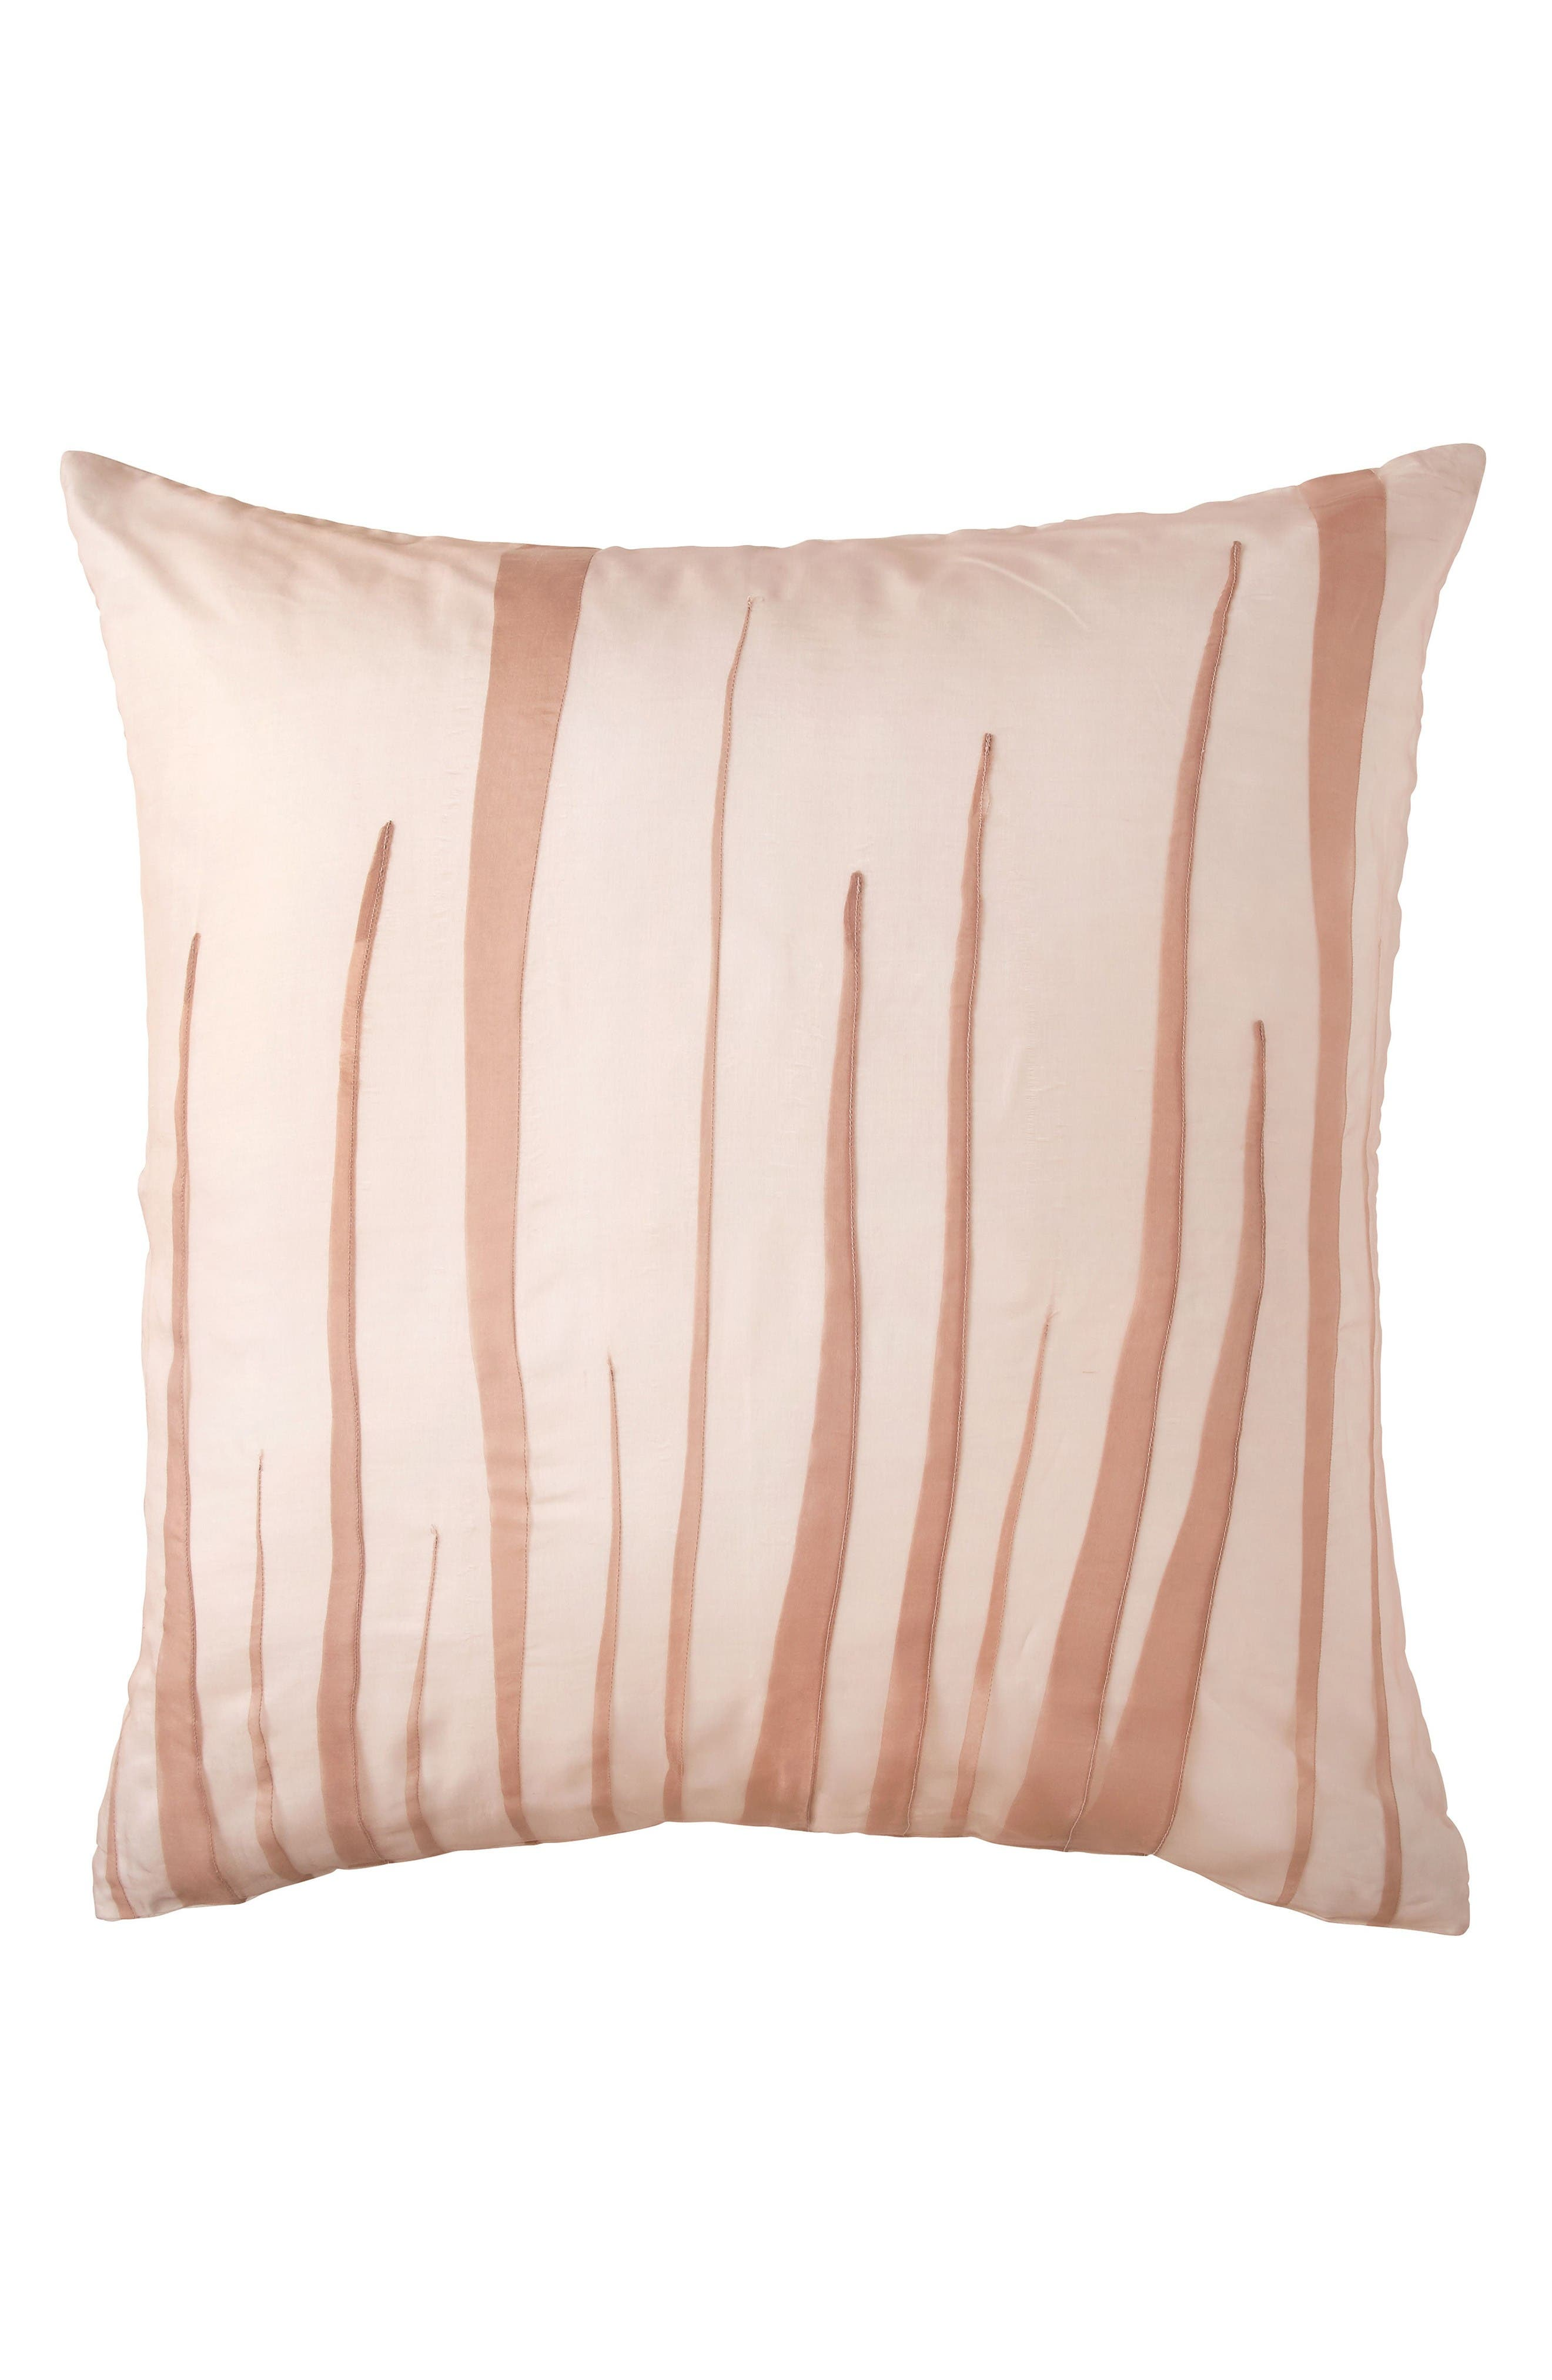 donna karan home collection awakening euro sham